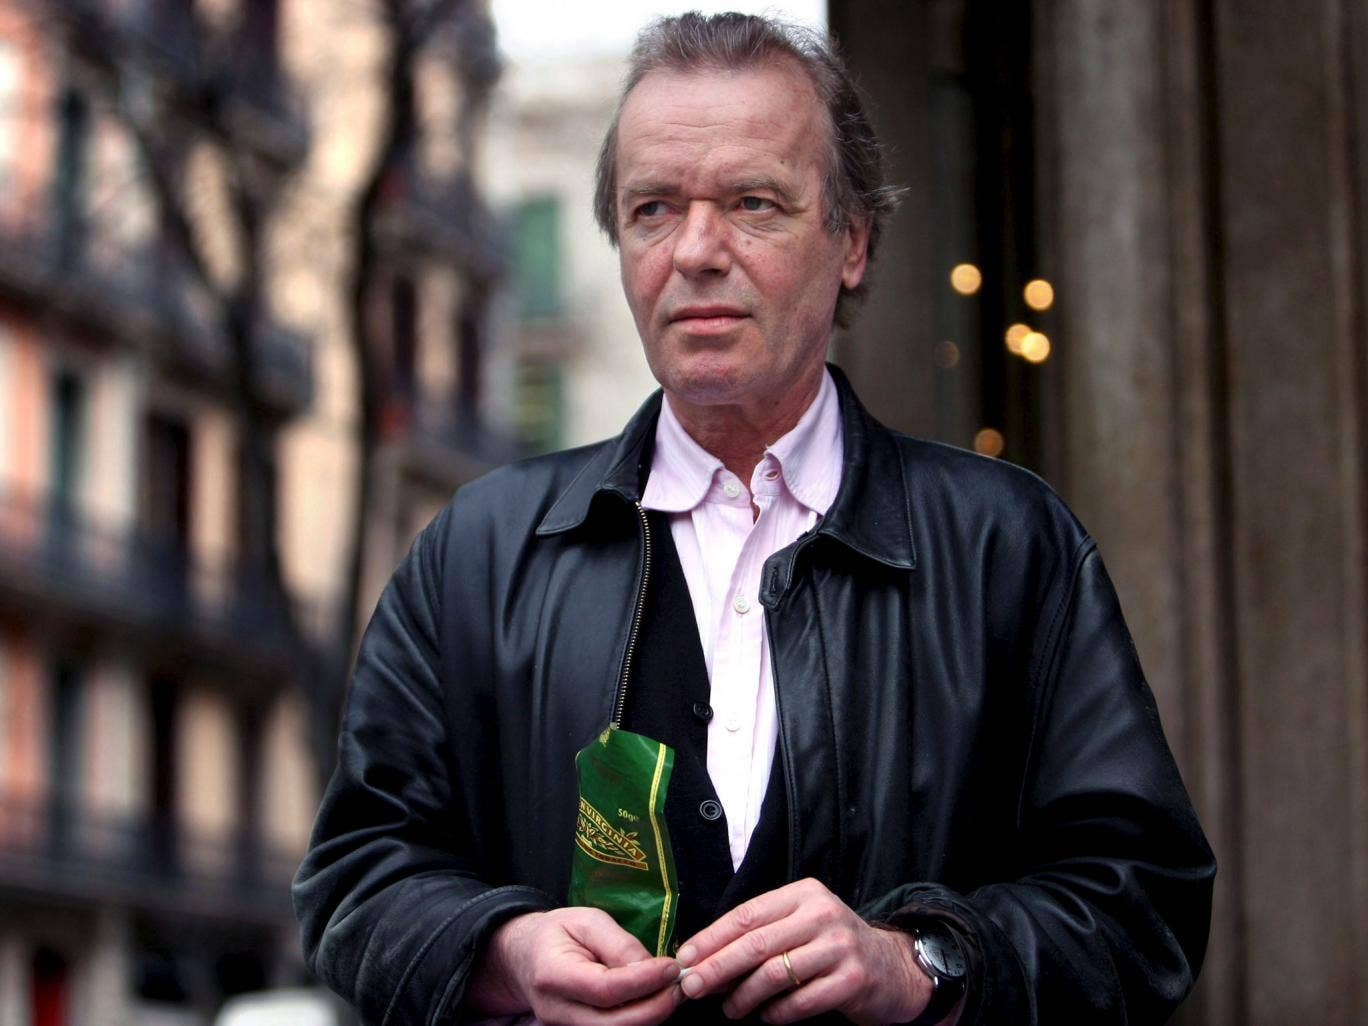 Writer Martin Amis has indicated that he may return to Britain